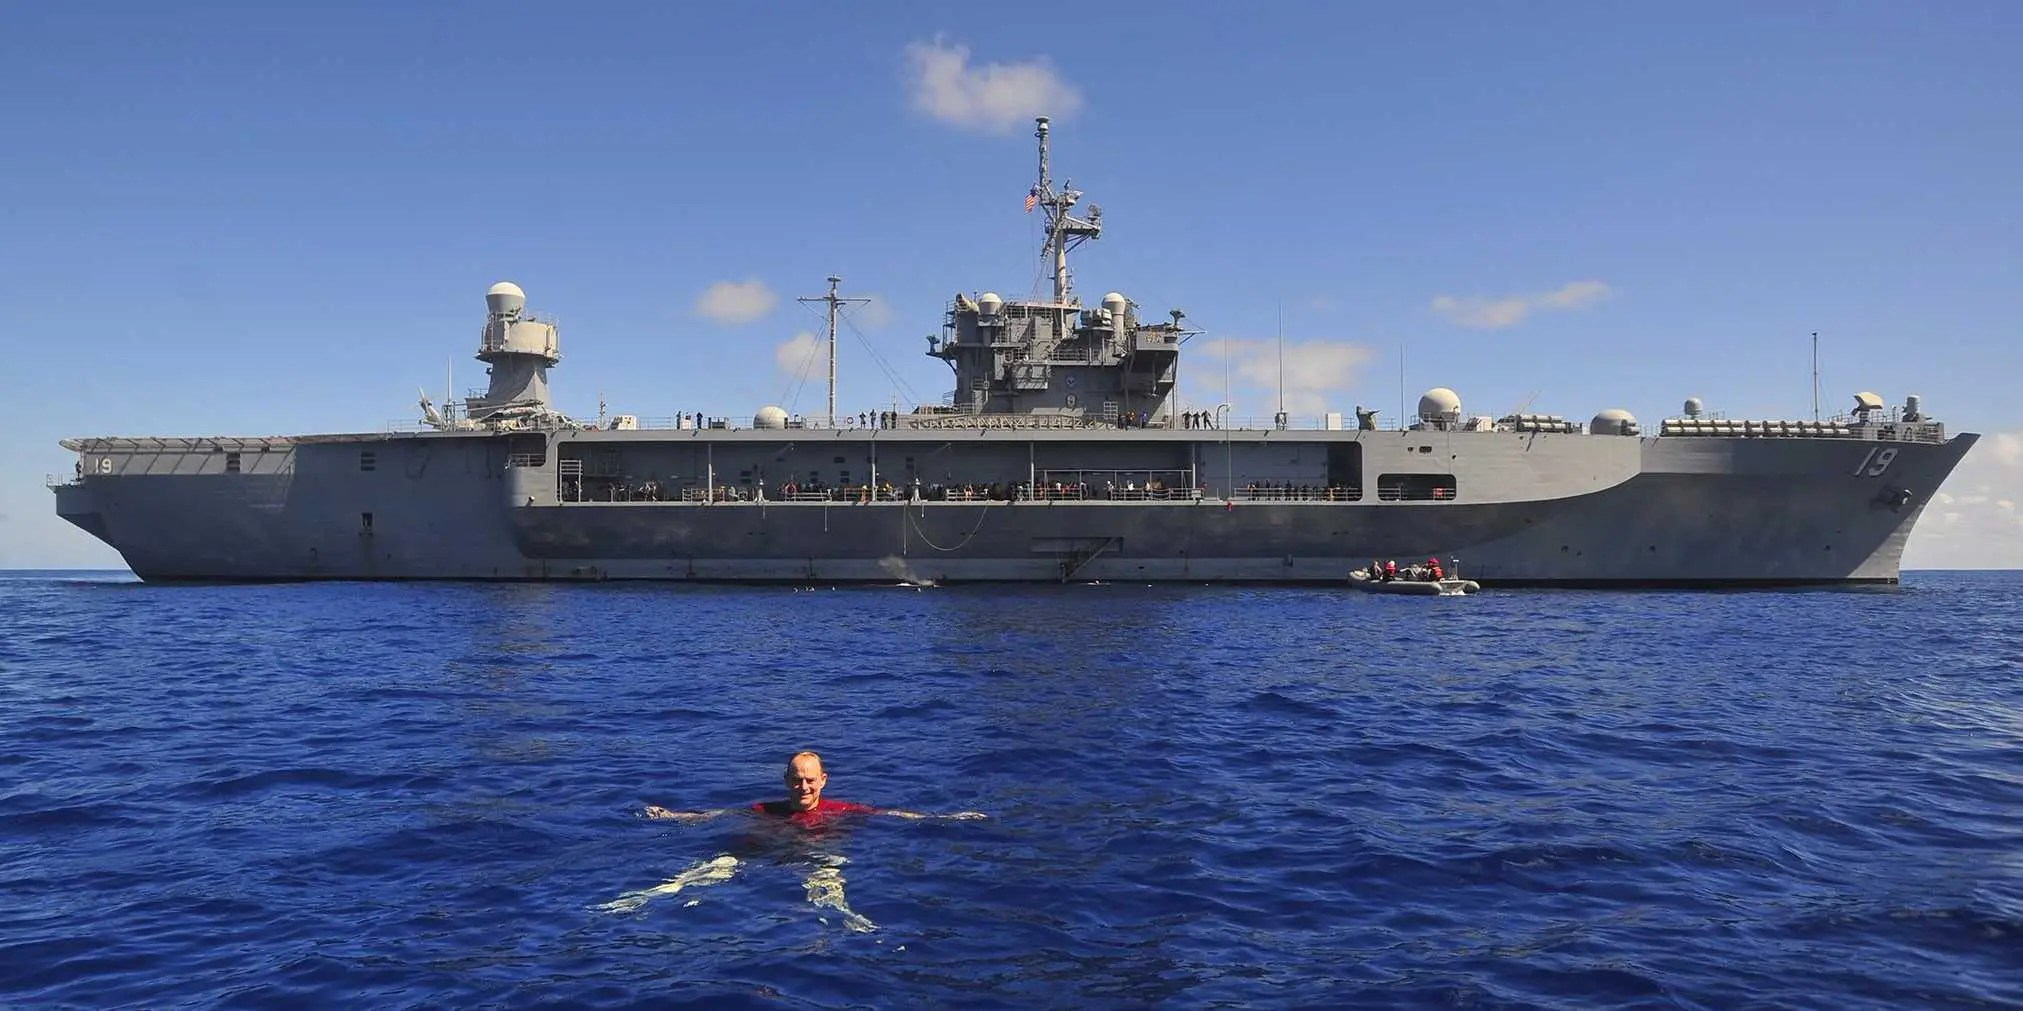 Us Navy Sailors Have One Of The Coolest Job Perks In The